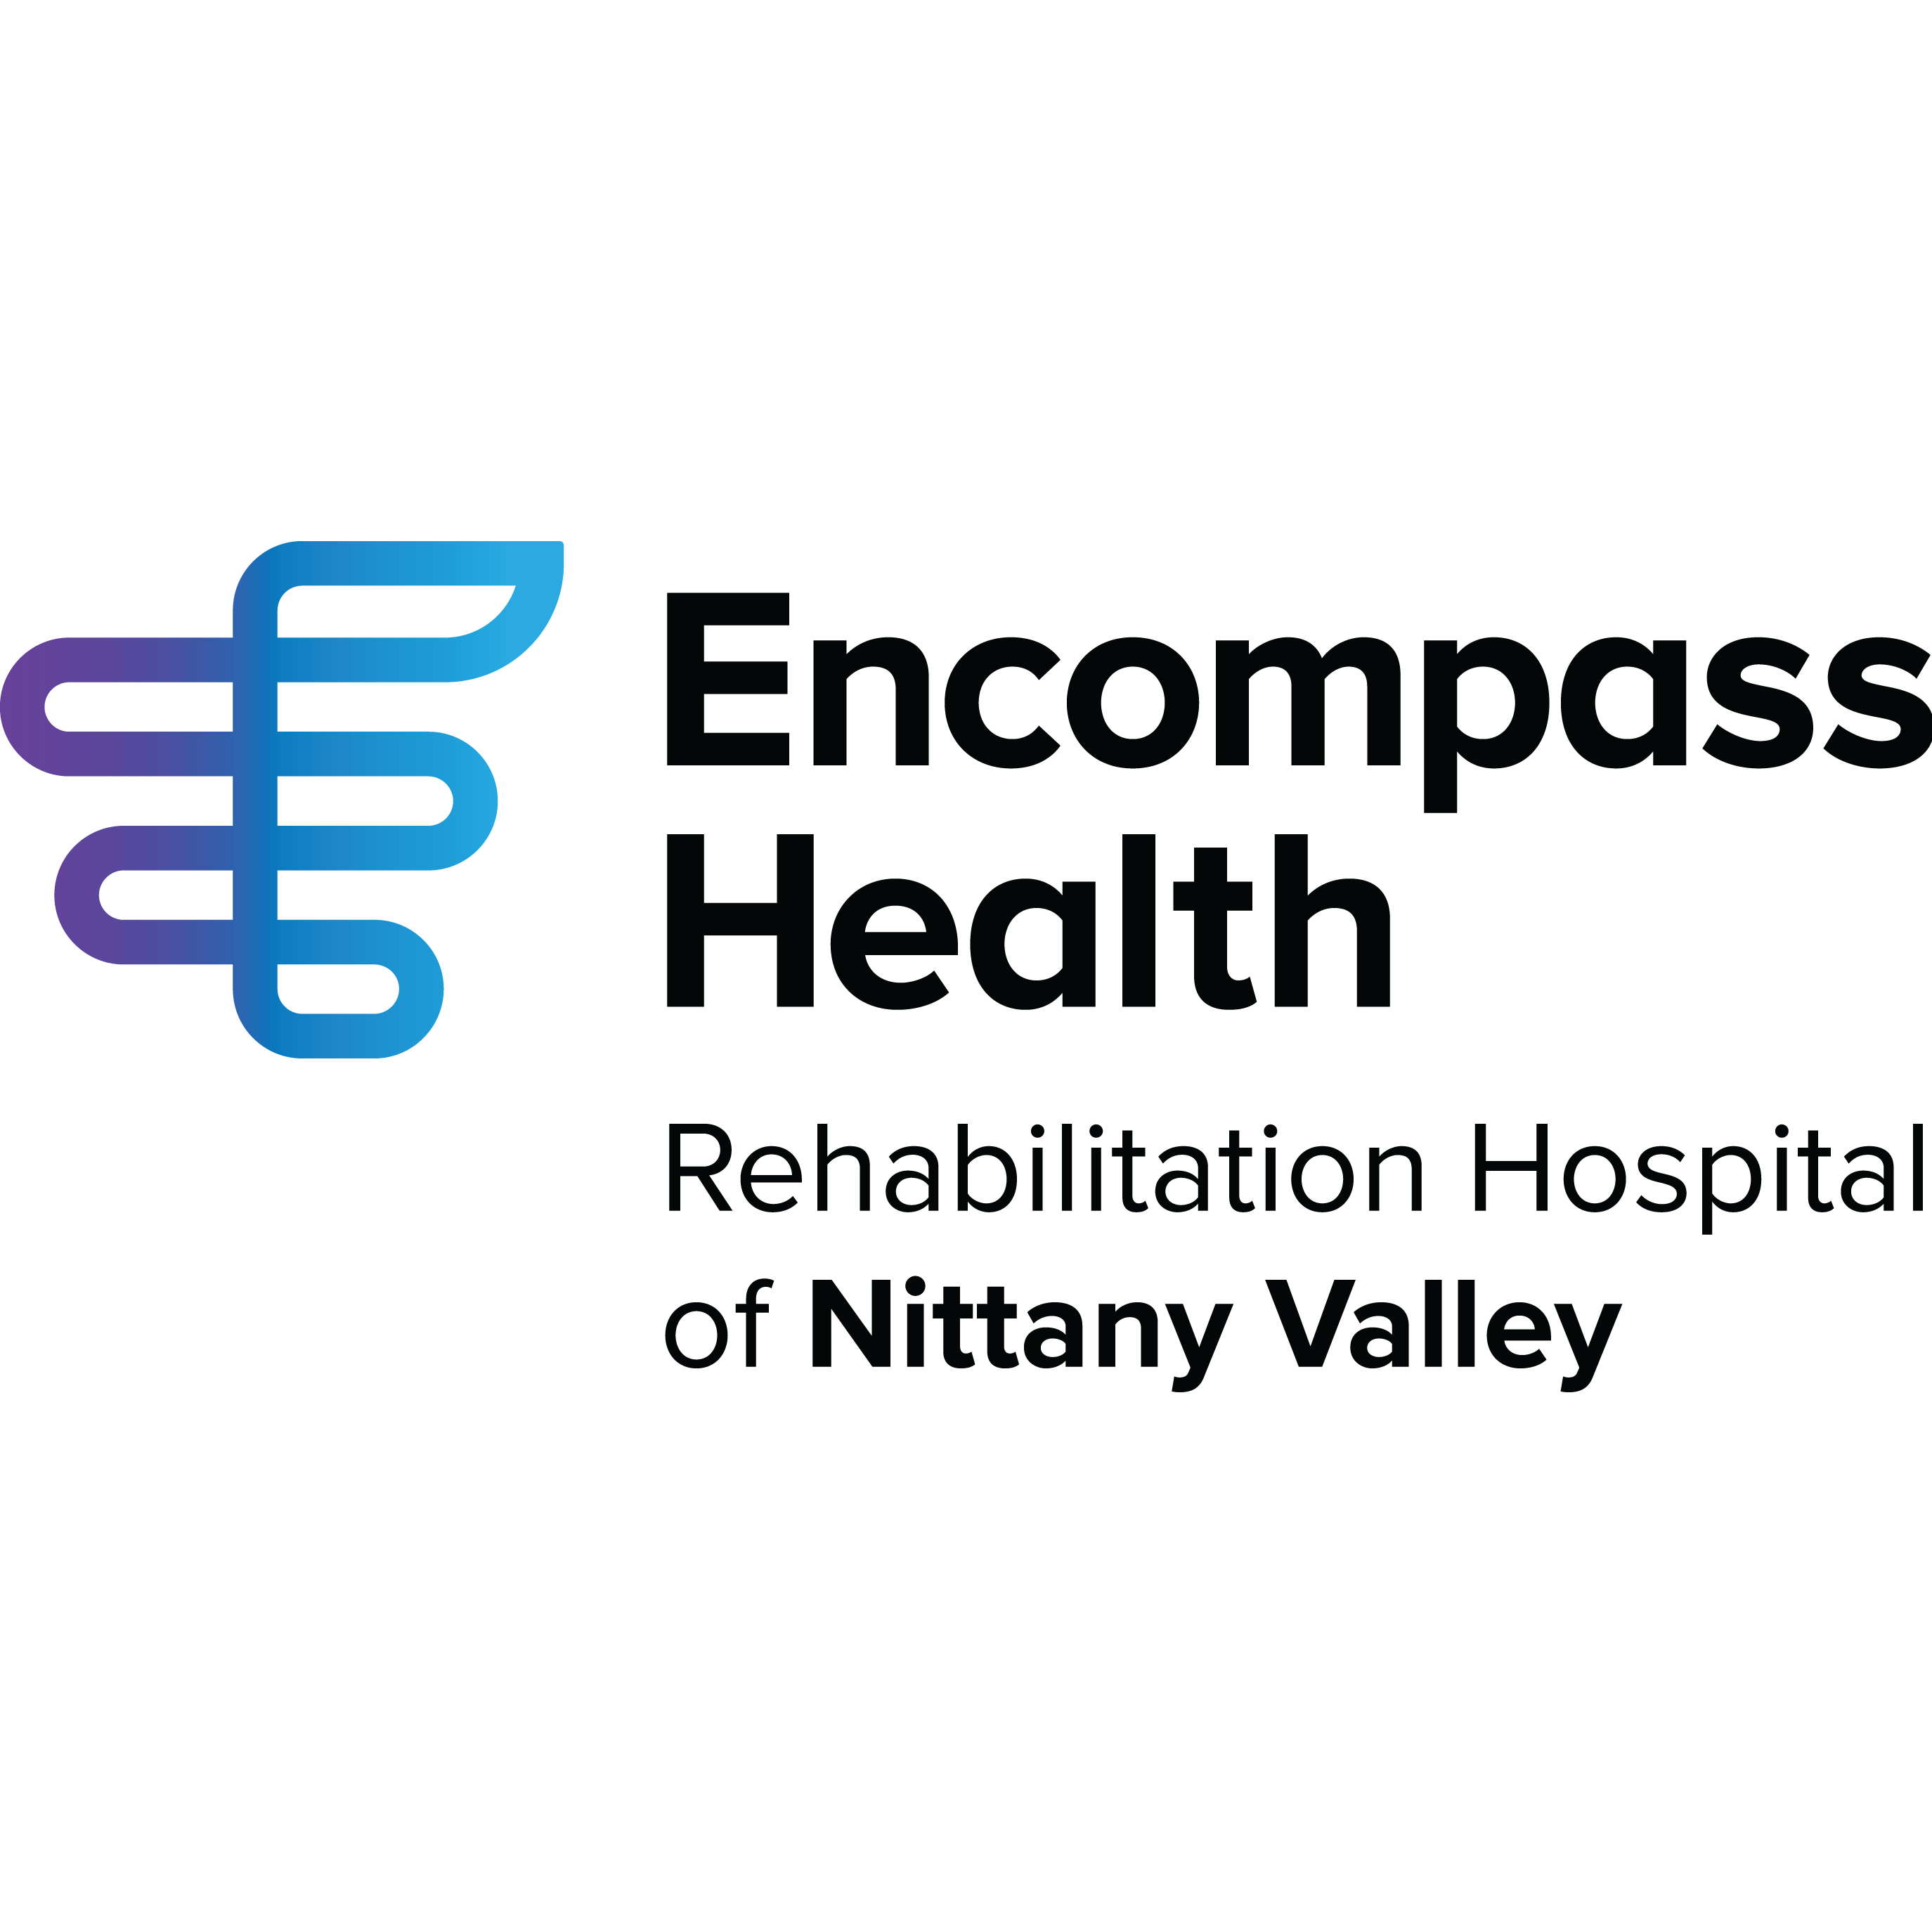 Encompass Health Rehabilitation Hospital of Nittany Valley